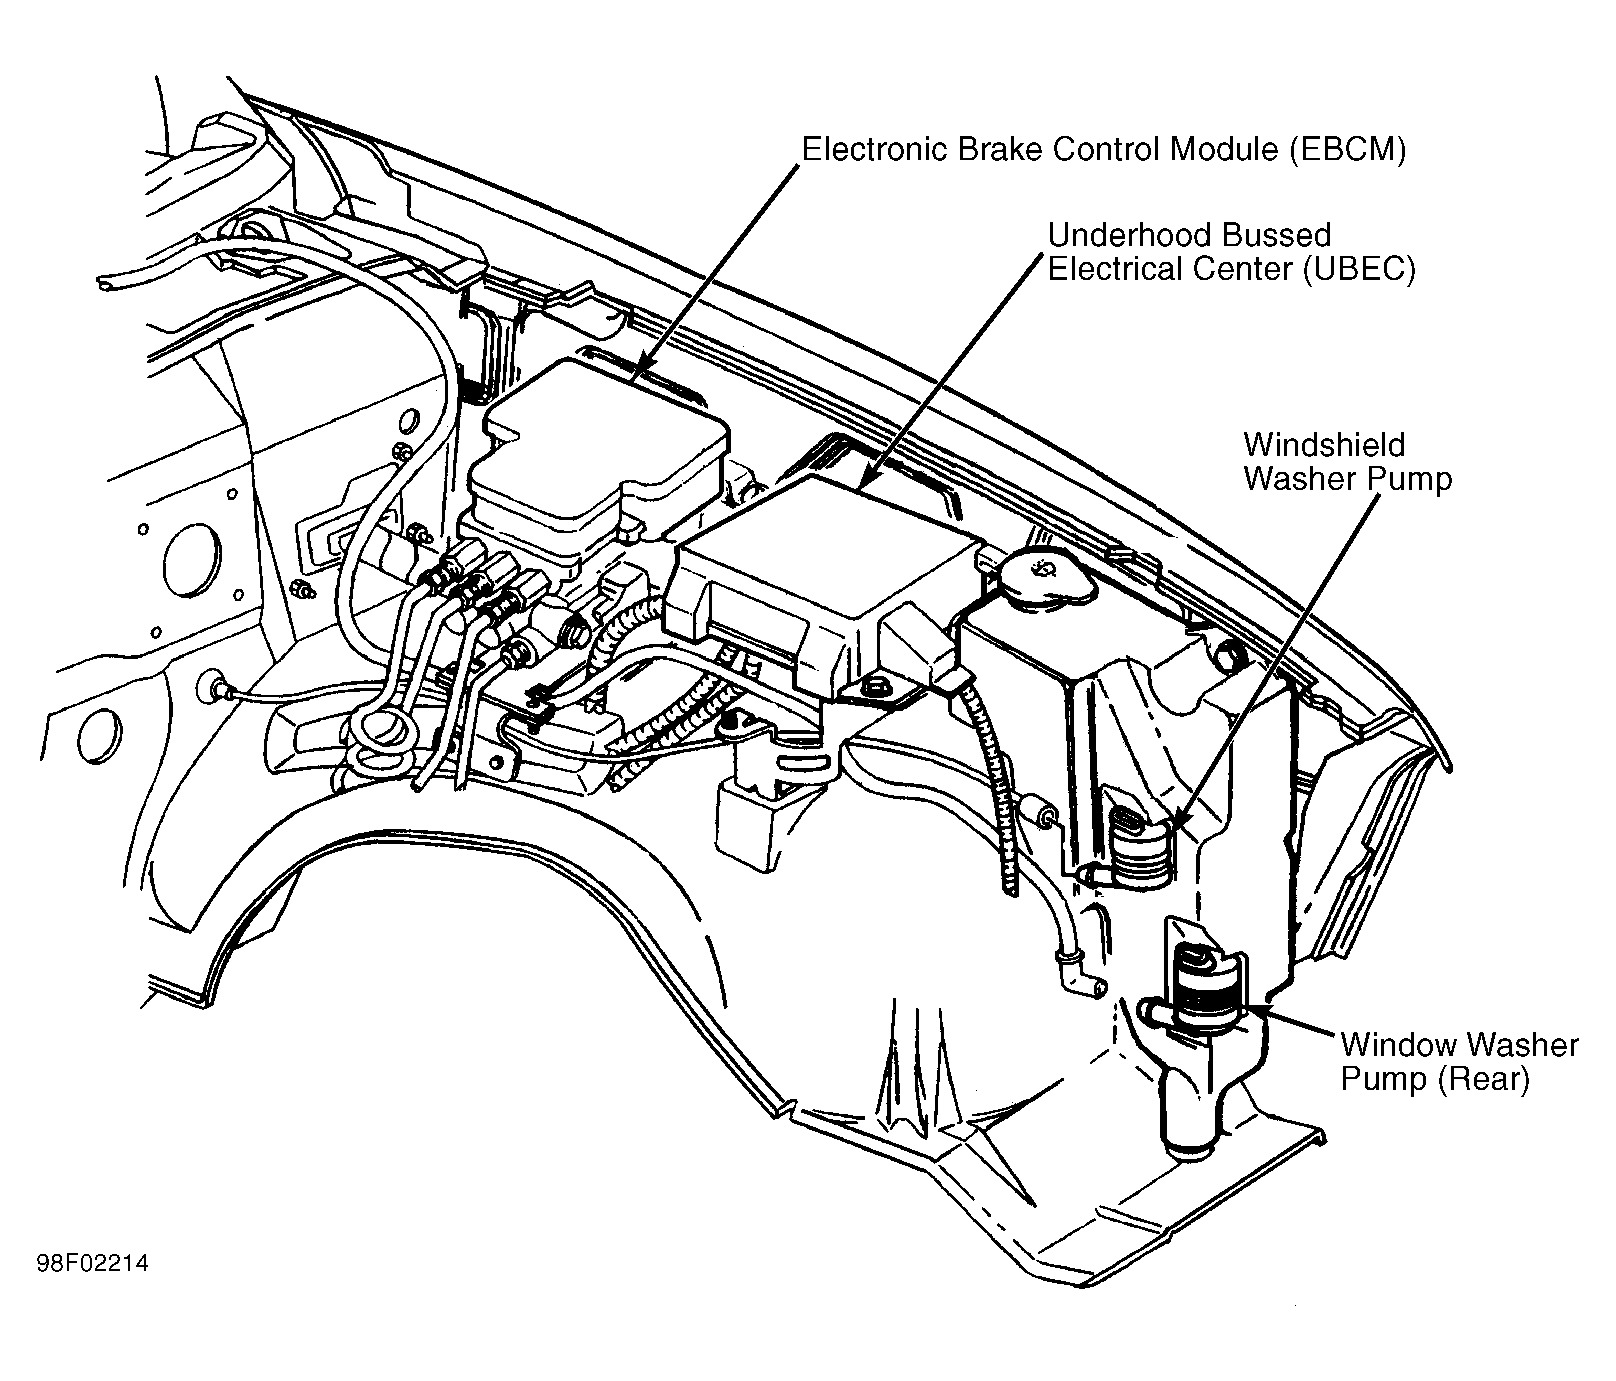 1998 Gmc Sonoma Engine Diagram Wiring Schematics Suzuki Diagrams Fuse Box Location Passenger Power Window Will Not 98